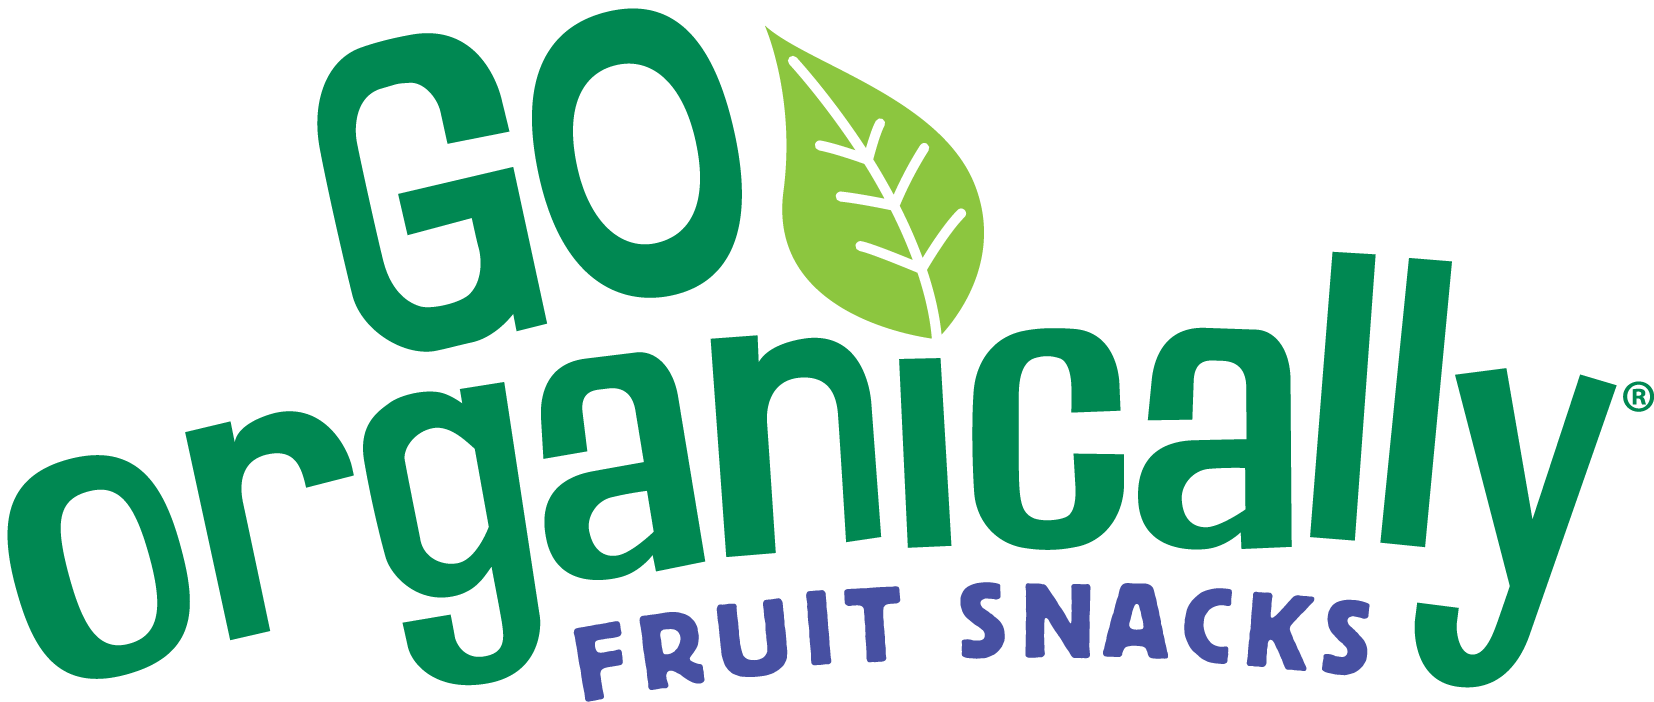 Go-Organically-Logo-(002).png